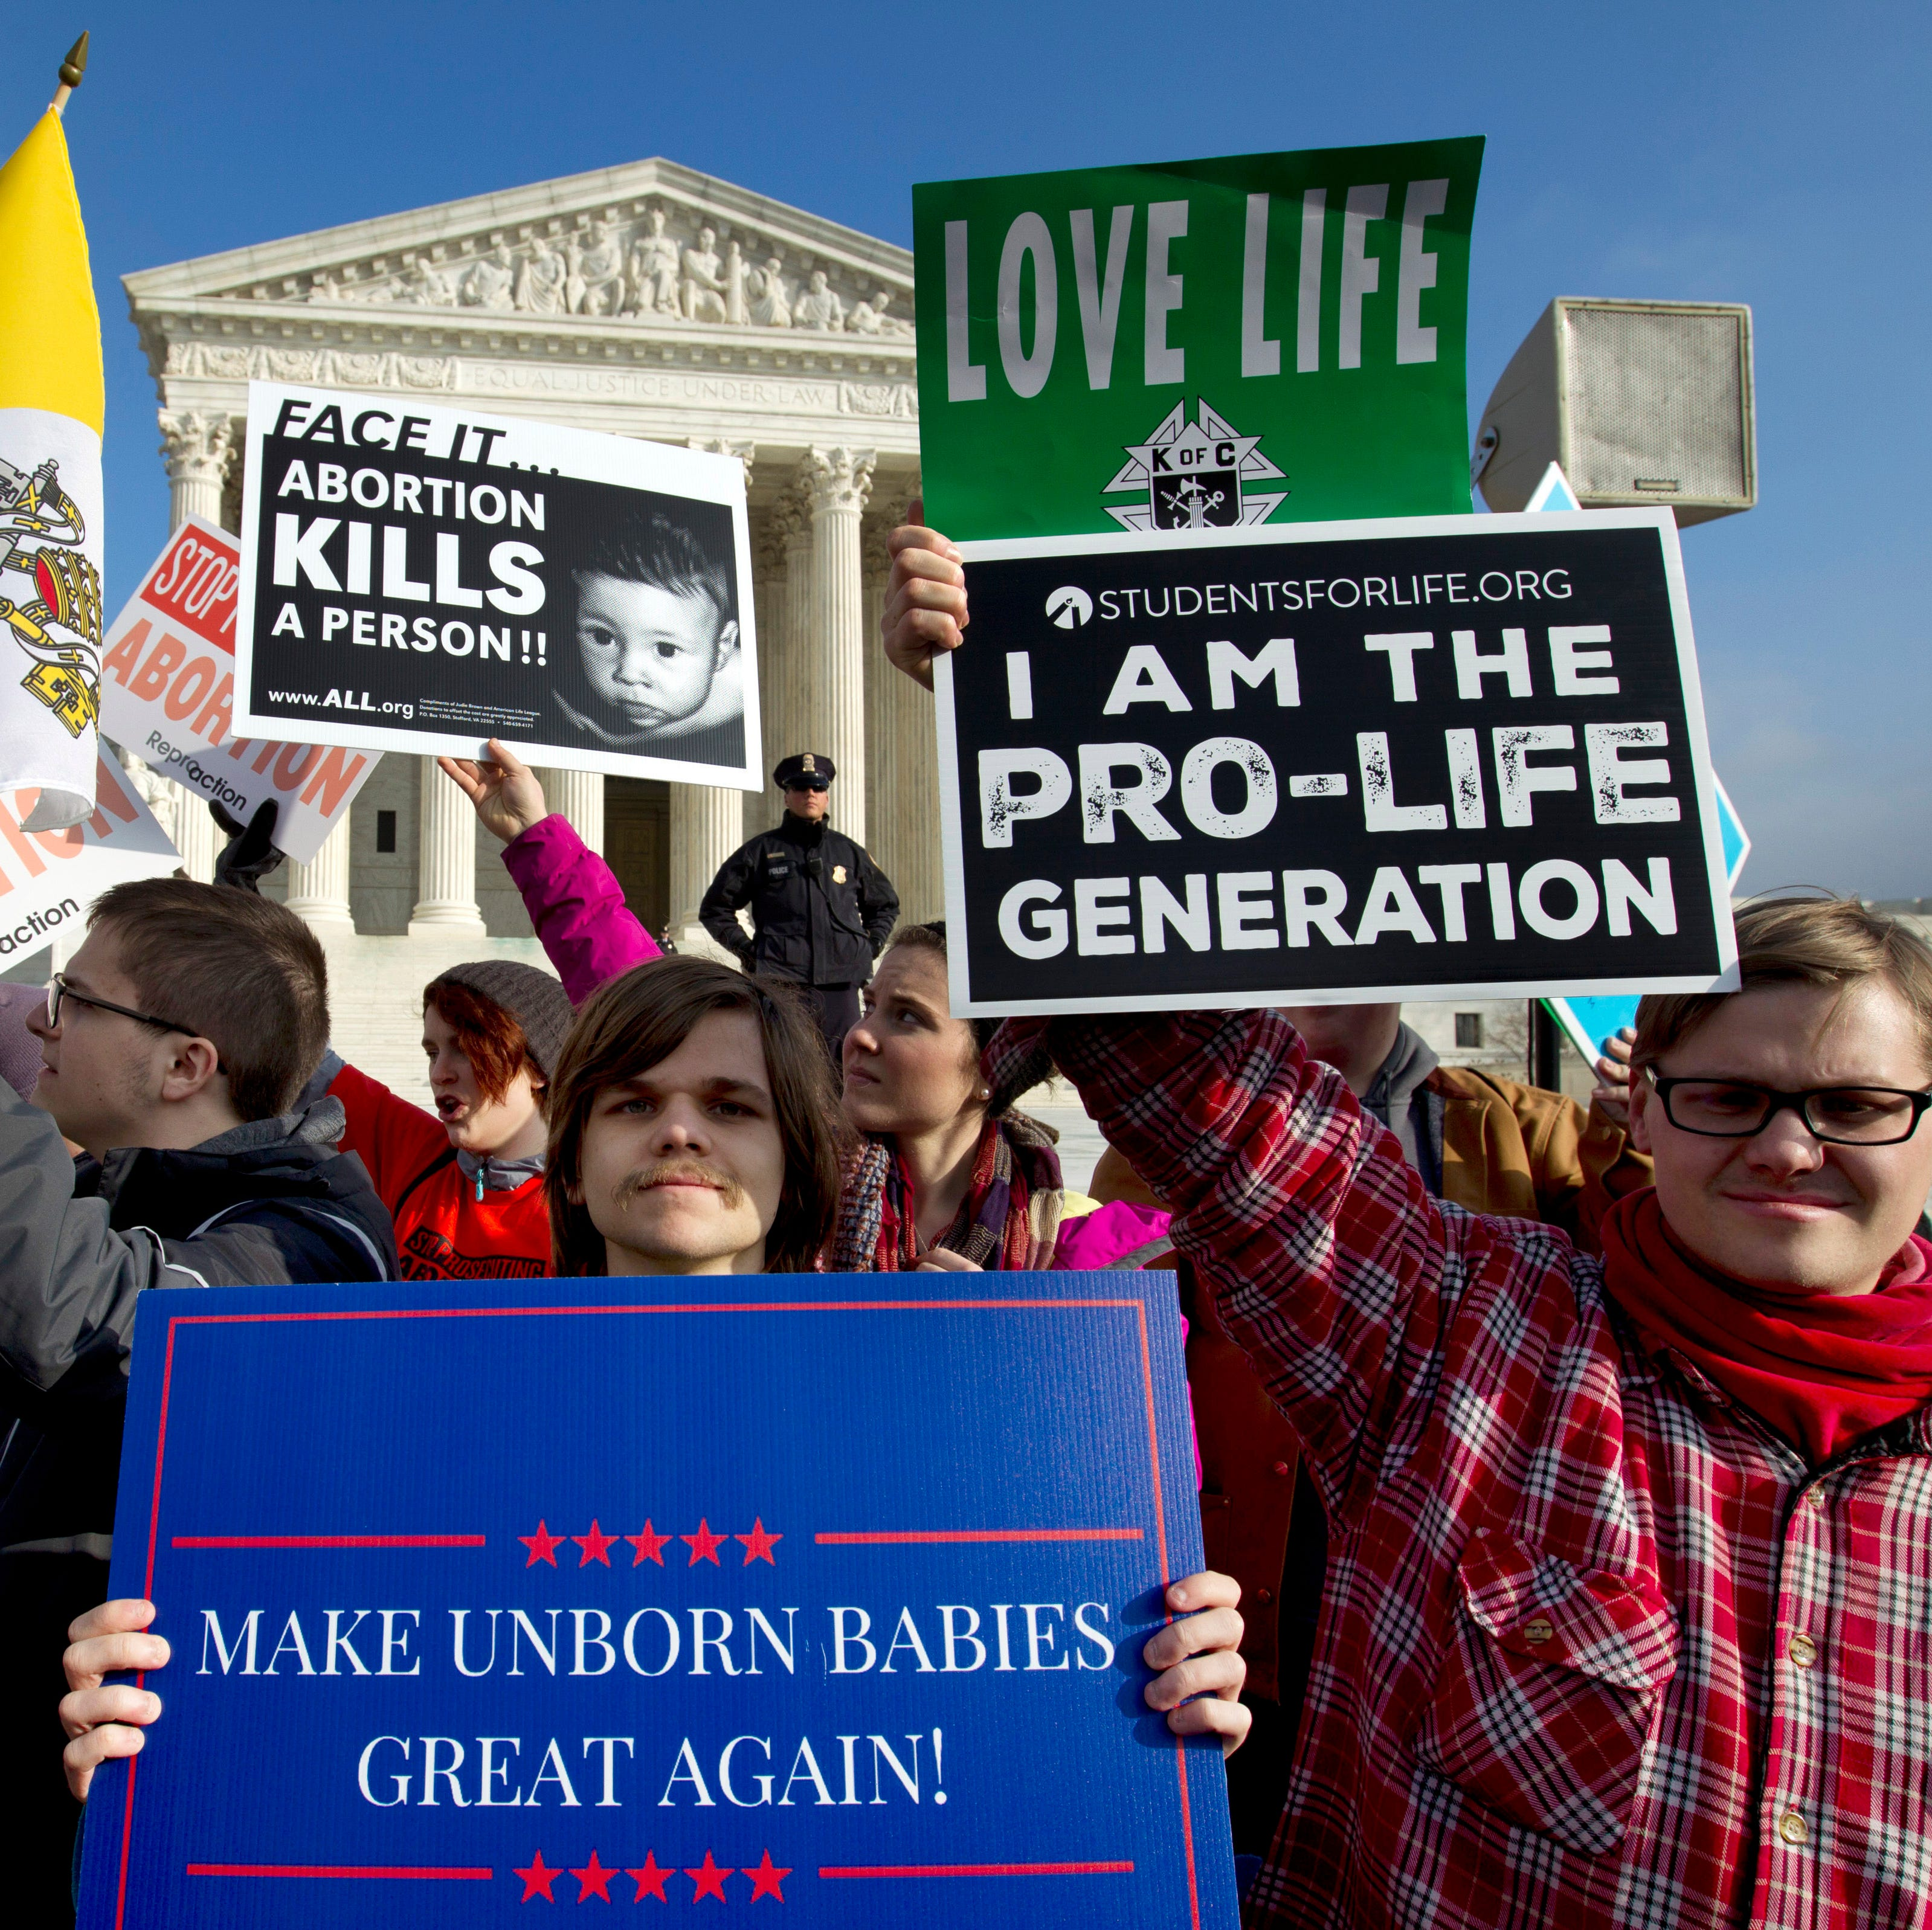 Louisiana voters may get their say on abortion